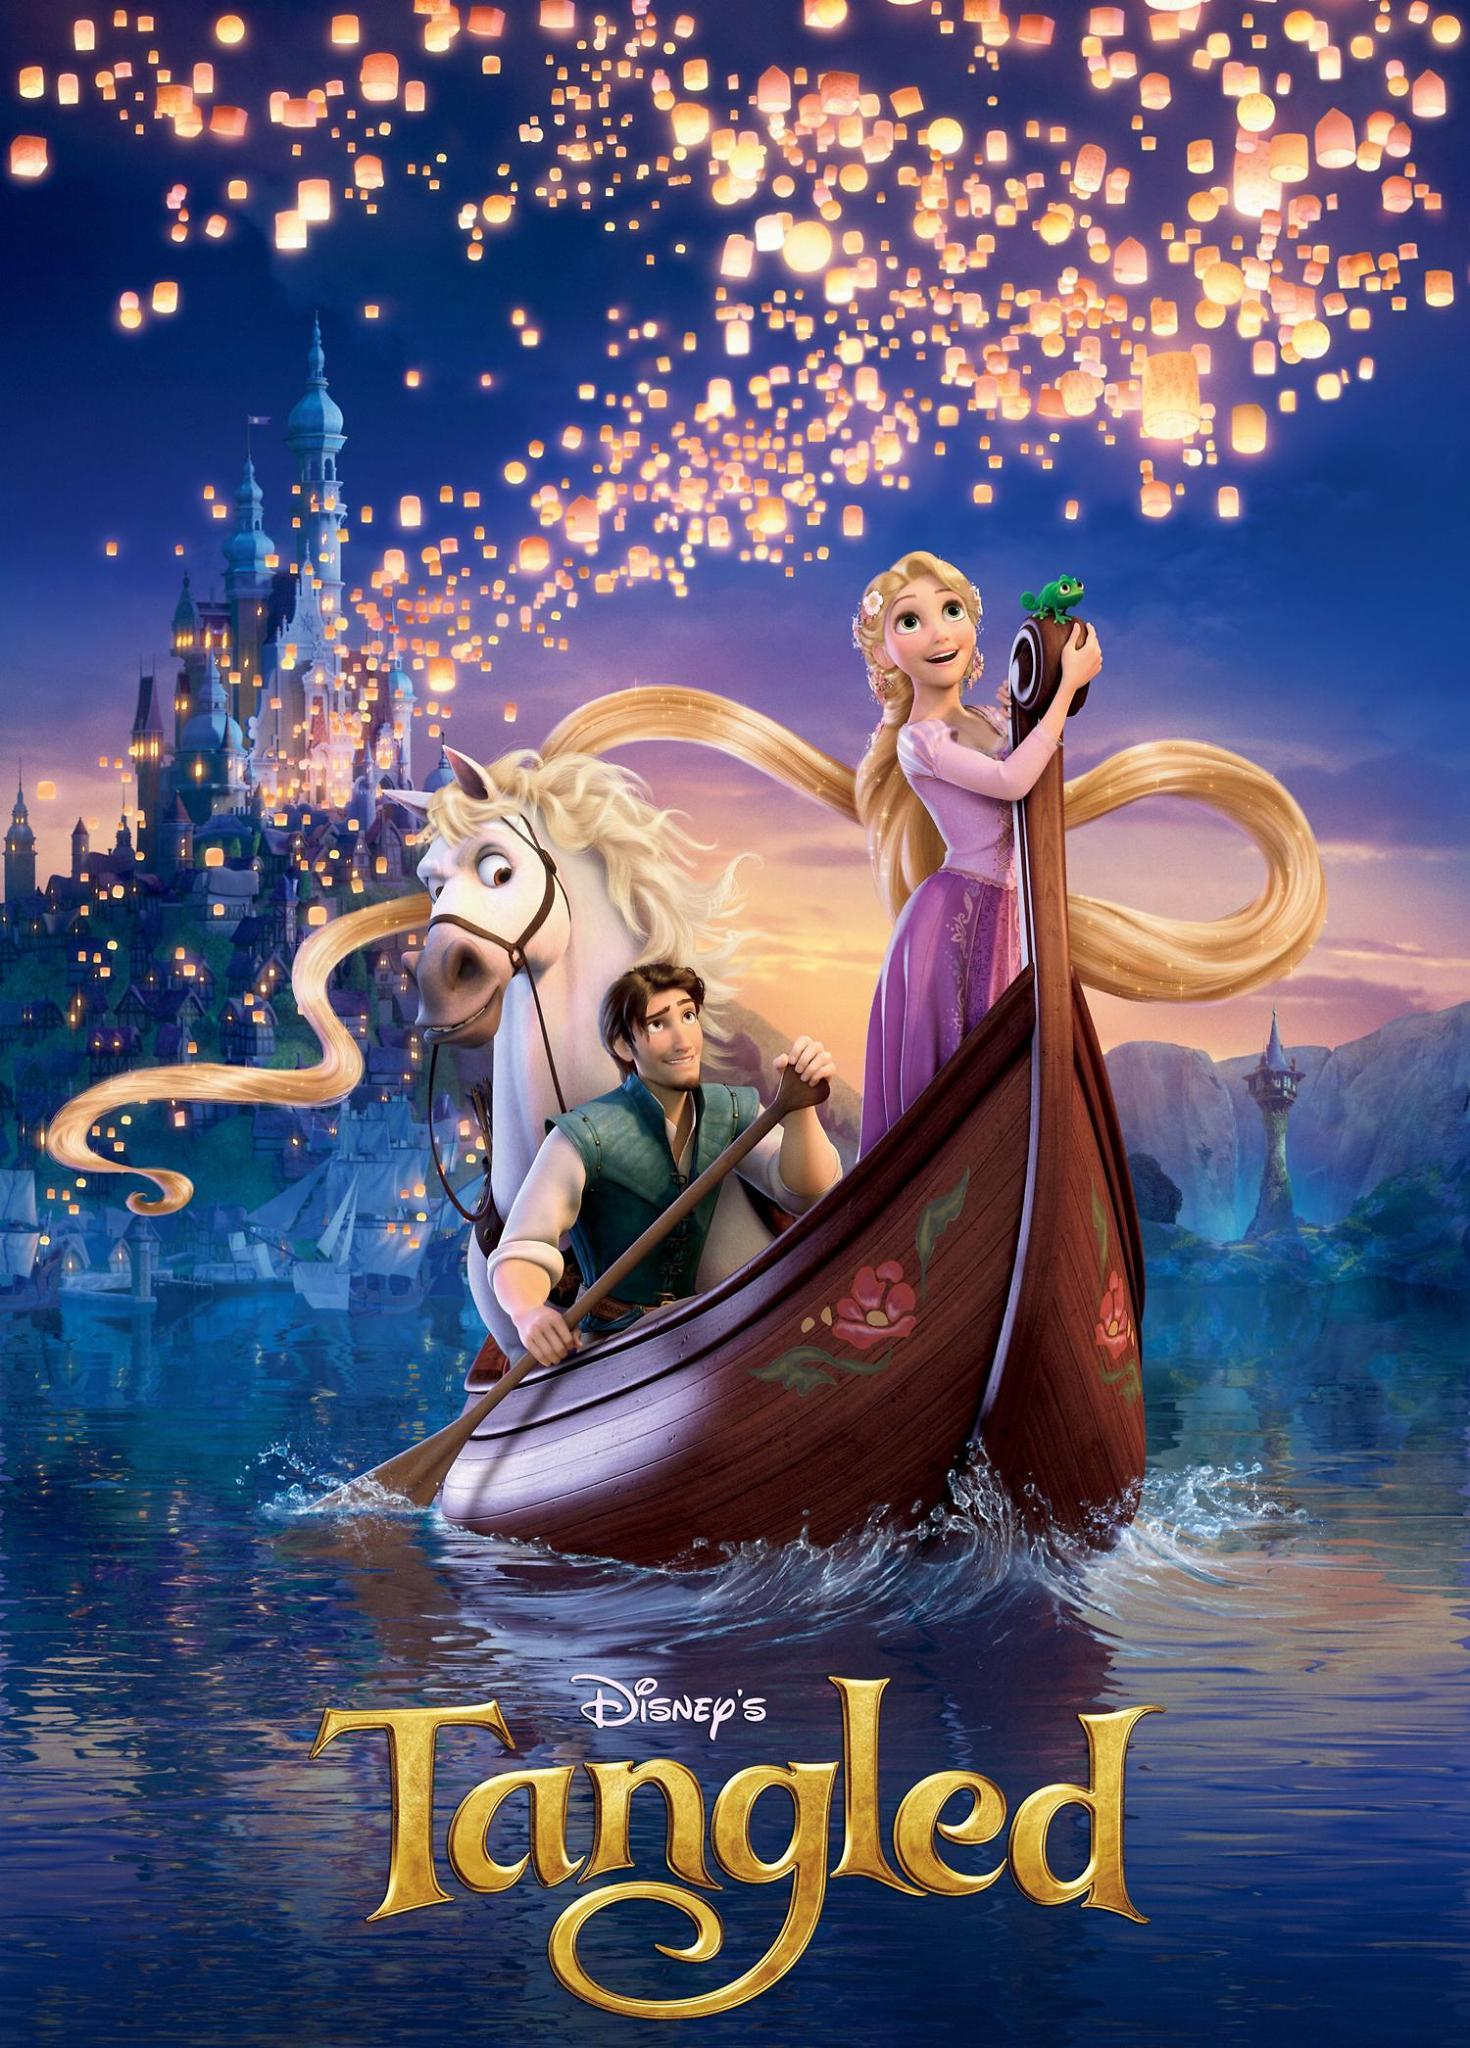 What Tangled Character are you???